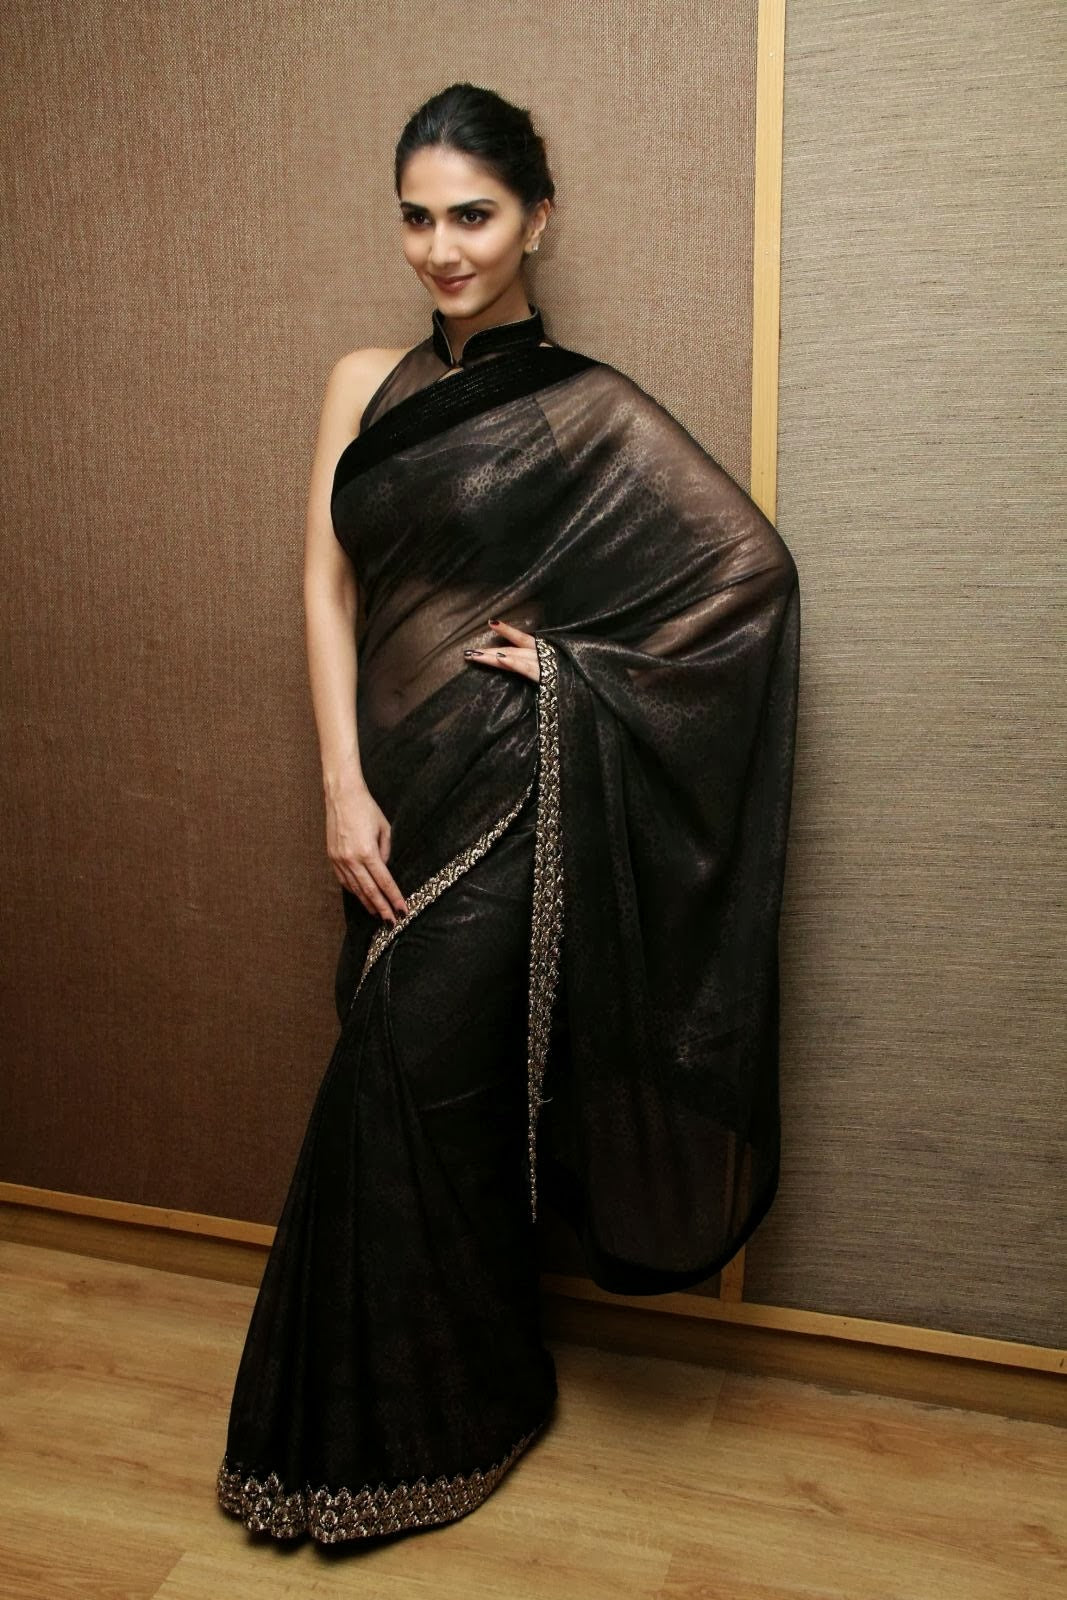 vaani-kapoor-in-black-saree